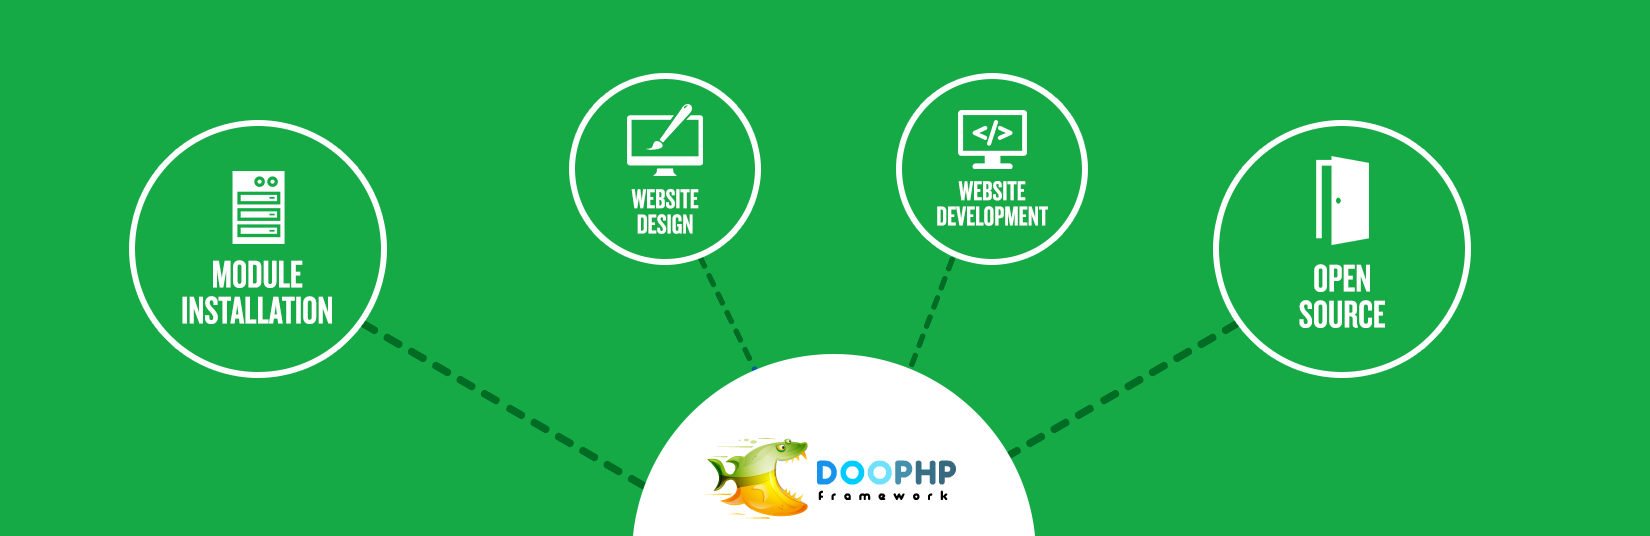 DOO PHP Development